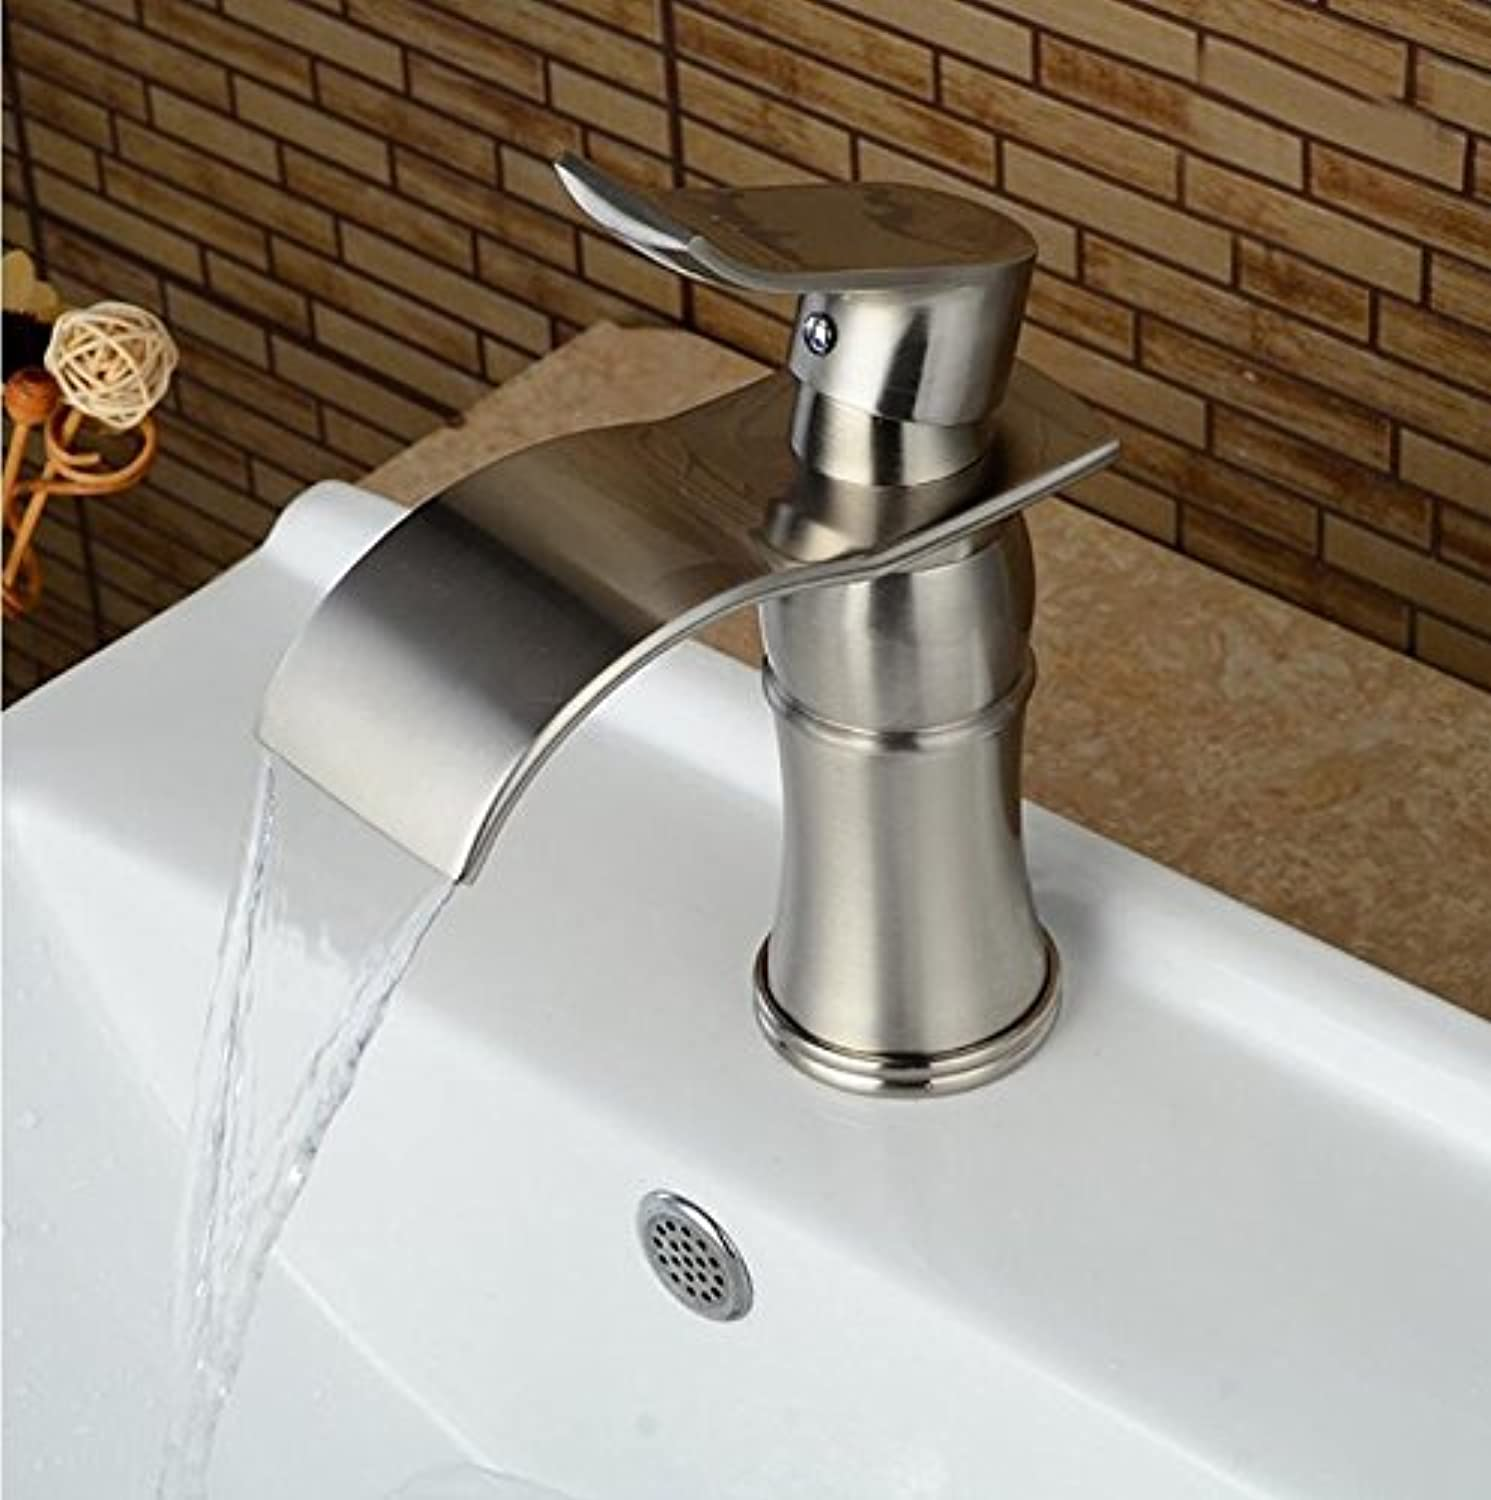 Makej Spout Bathroom Faucet Single Handle Hole Vanity Sink Mixer Tap Deck Mounted Brushed Nickel